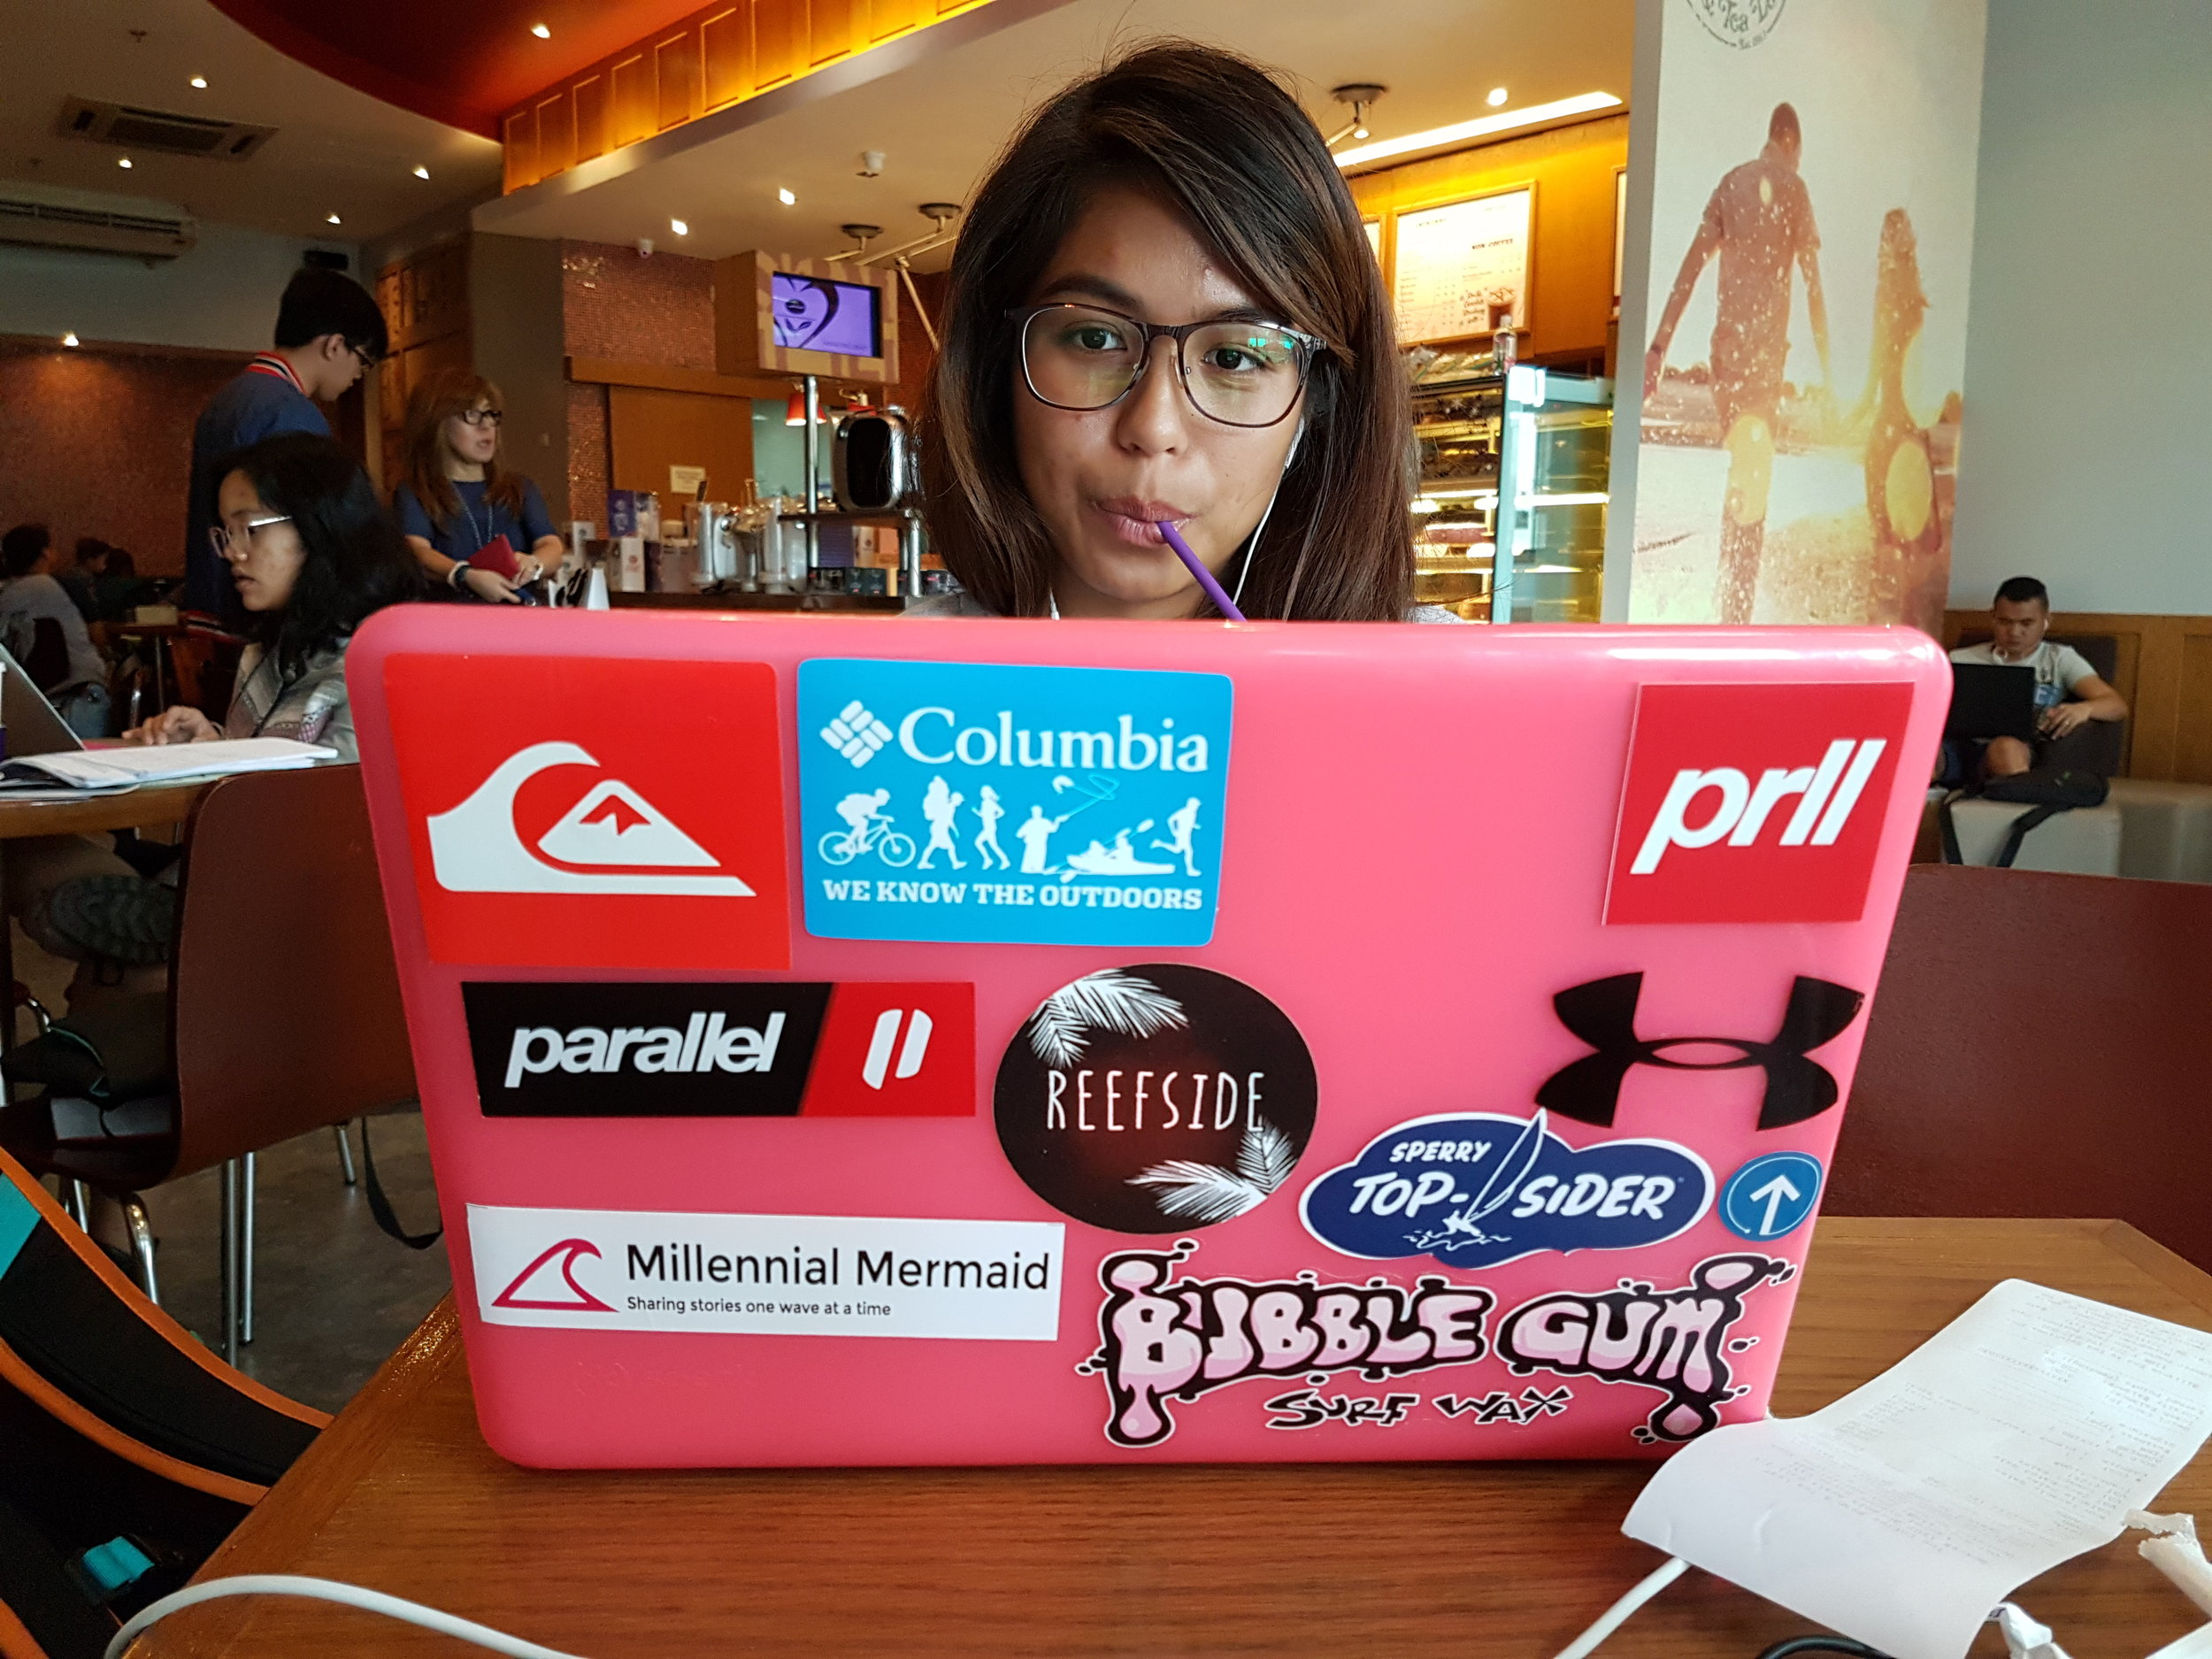 Hitting the third month mark of being a digital nomad writer (if there's such a thing). Transitioning was hard so I had to work in coffee shops like Coffee Bean and Tea Leaf just to be able to concentrate working on my own.